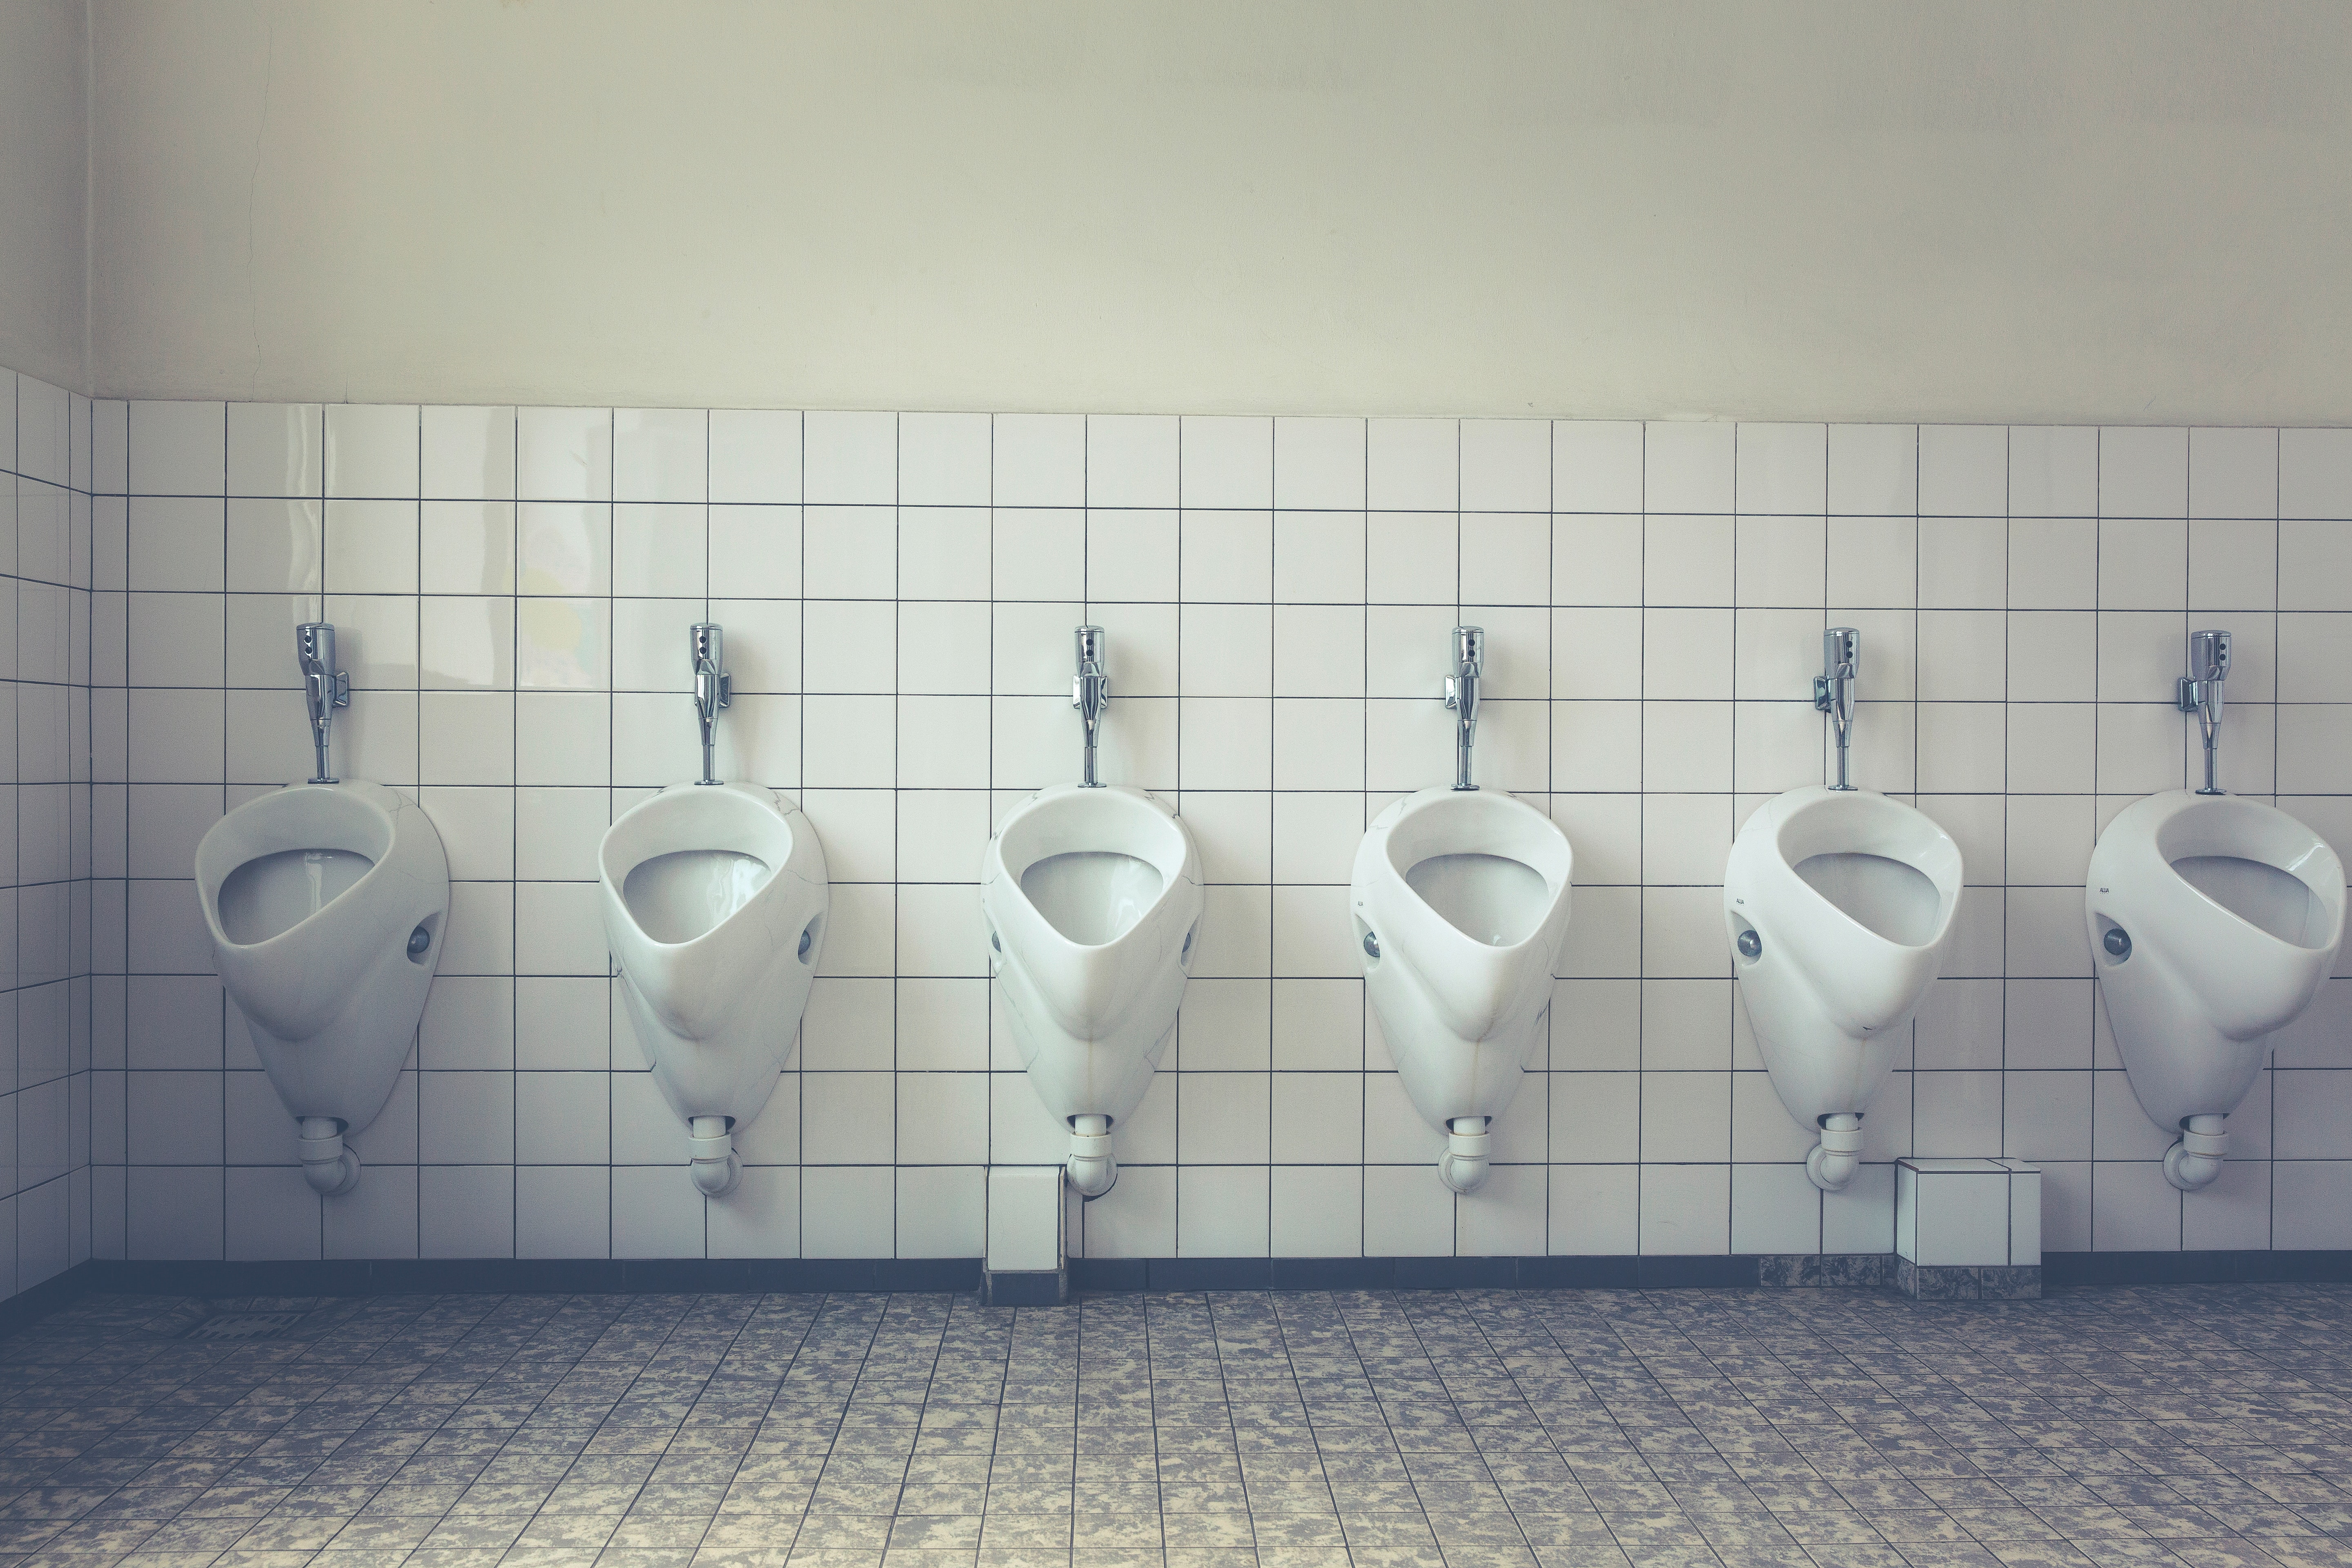 An average person visits the toilet 2500 times a year. Shutterstock